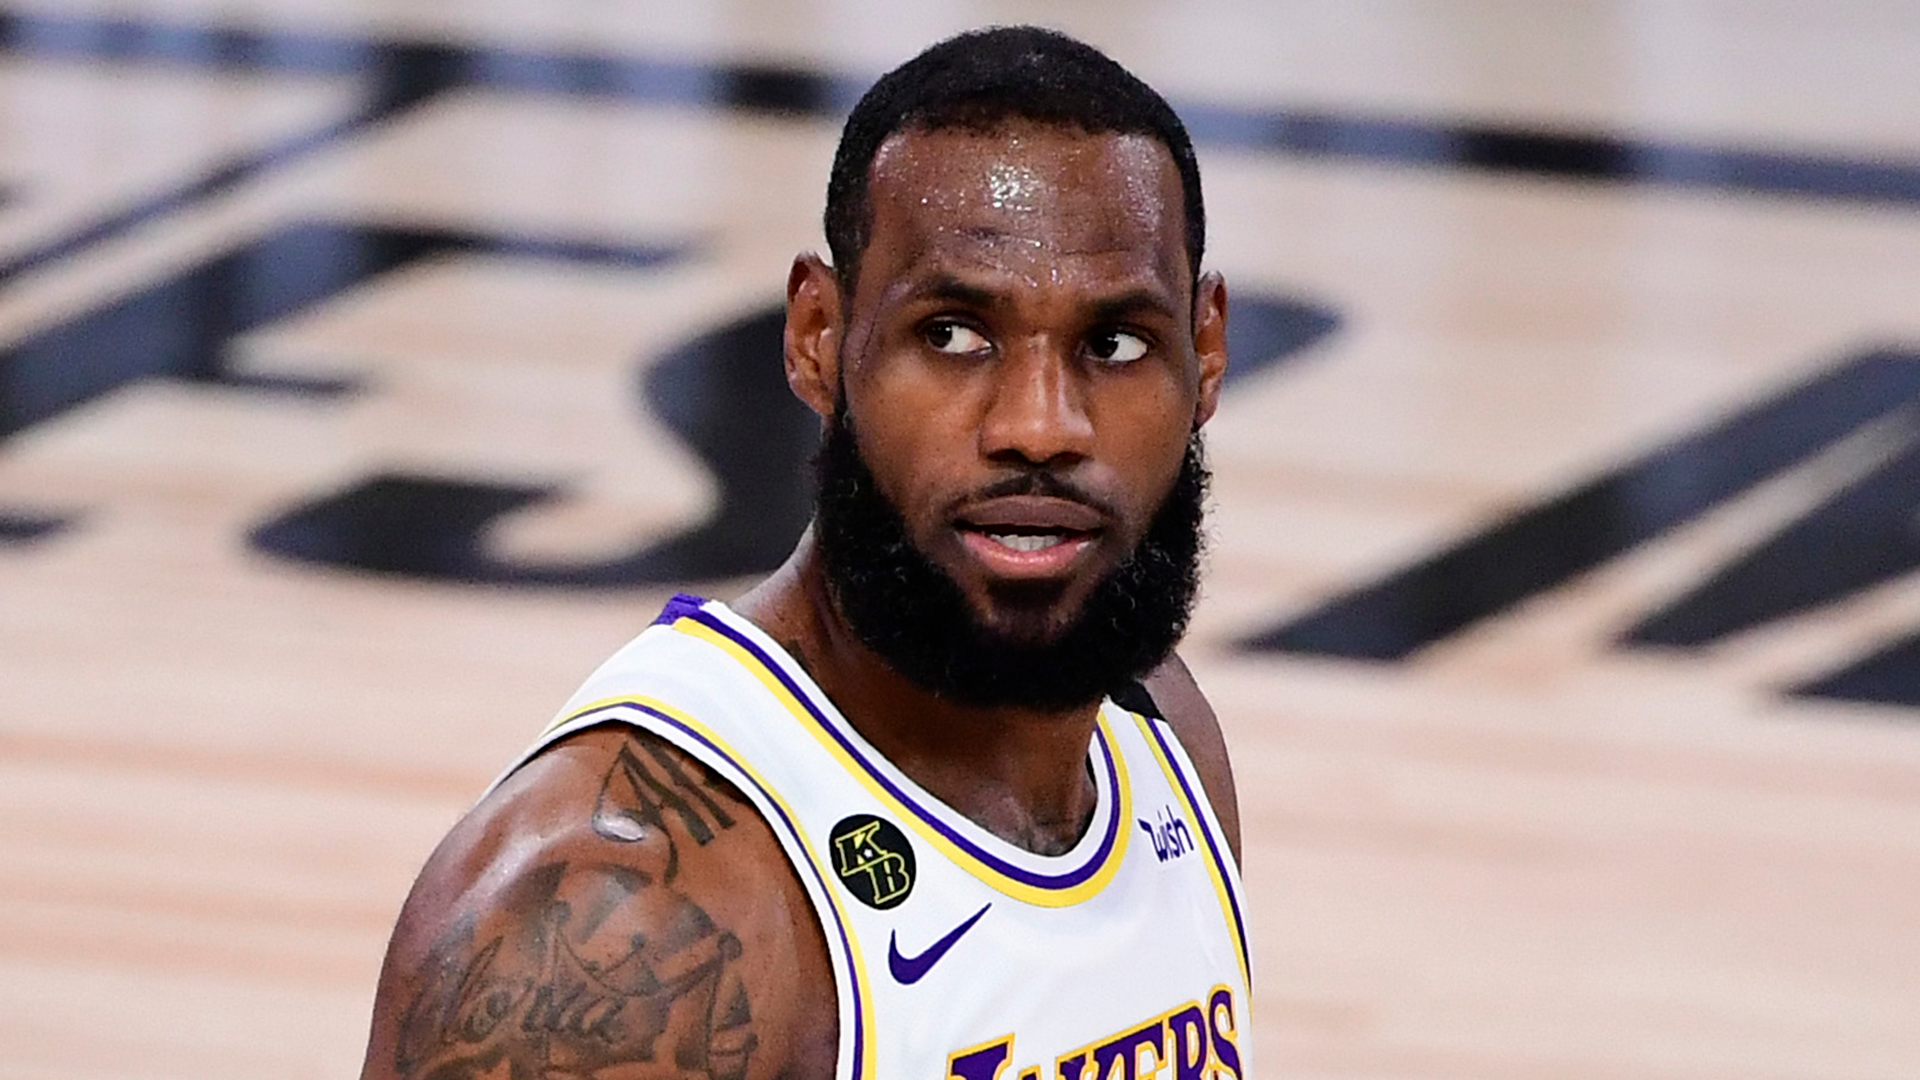 Lakers' LeBron James responds to Zlatan Ibrahimovic: 'No way I would ever just stick to sports'